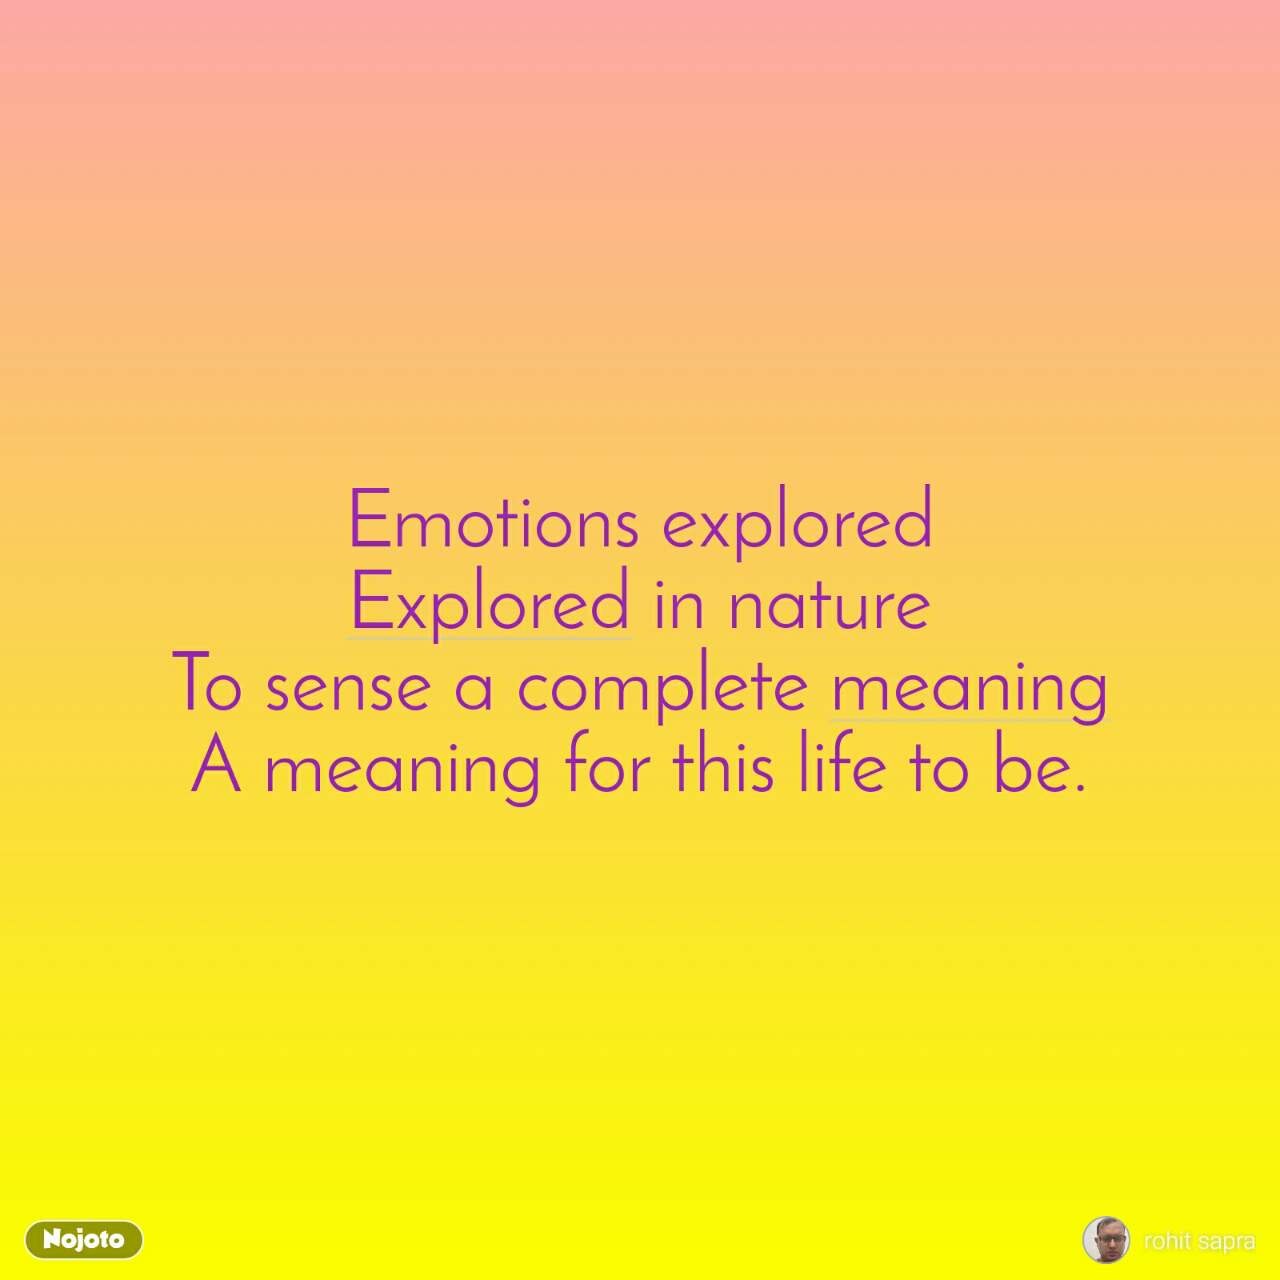 Emotions explored Explored in nature To sense a complete meaning A meaning for this life to be.